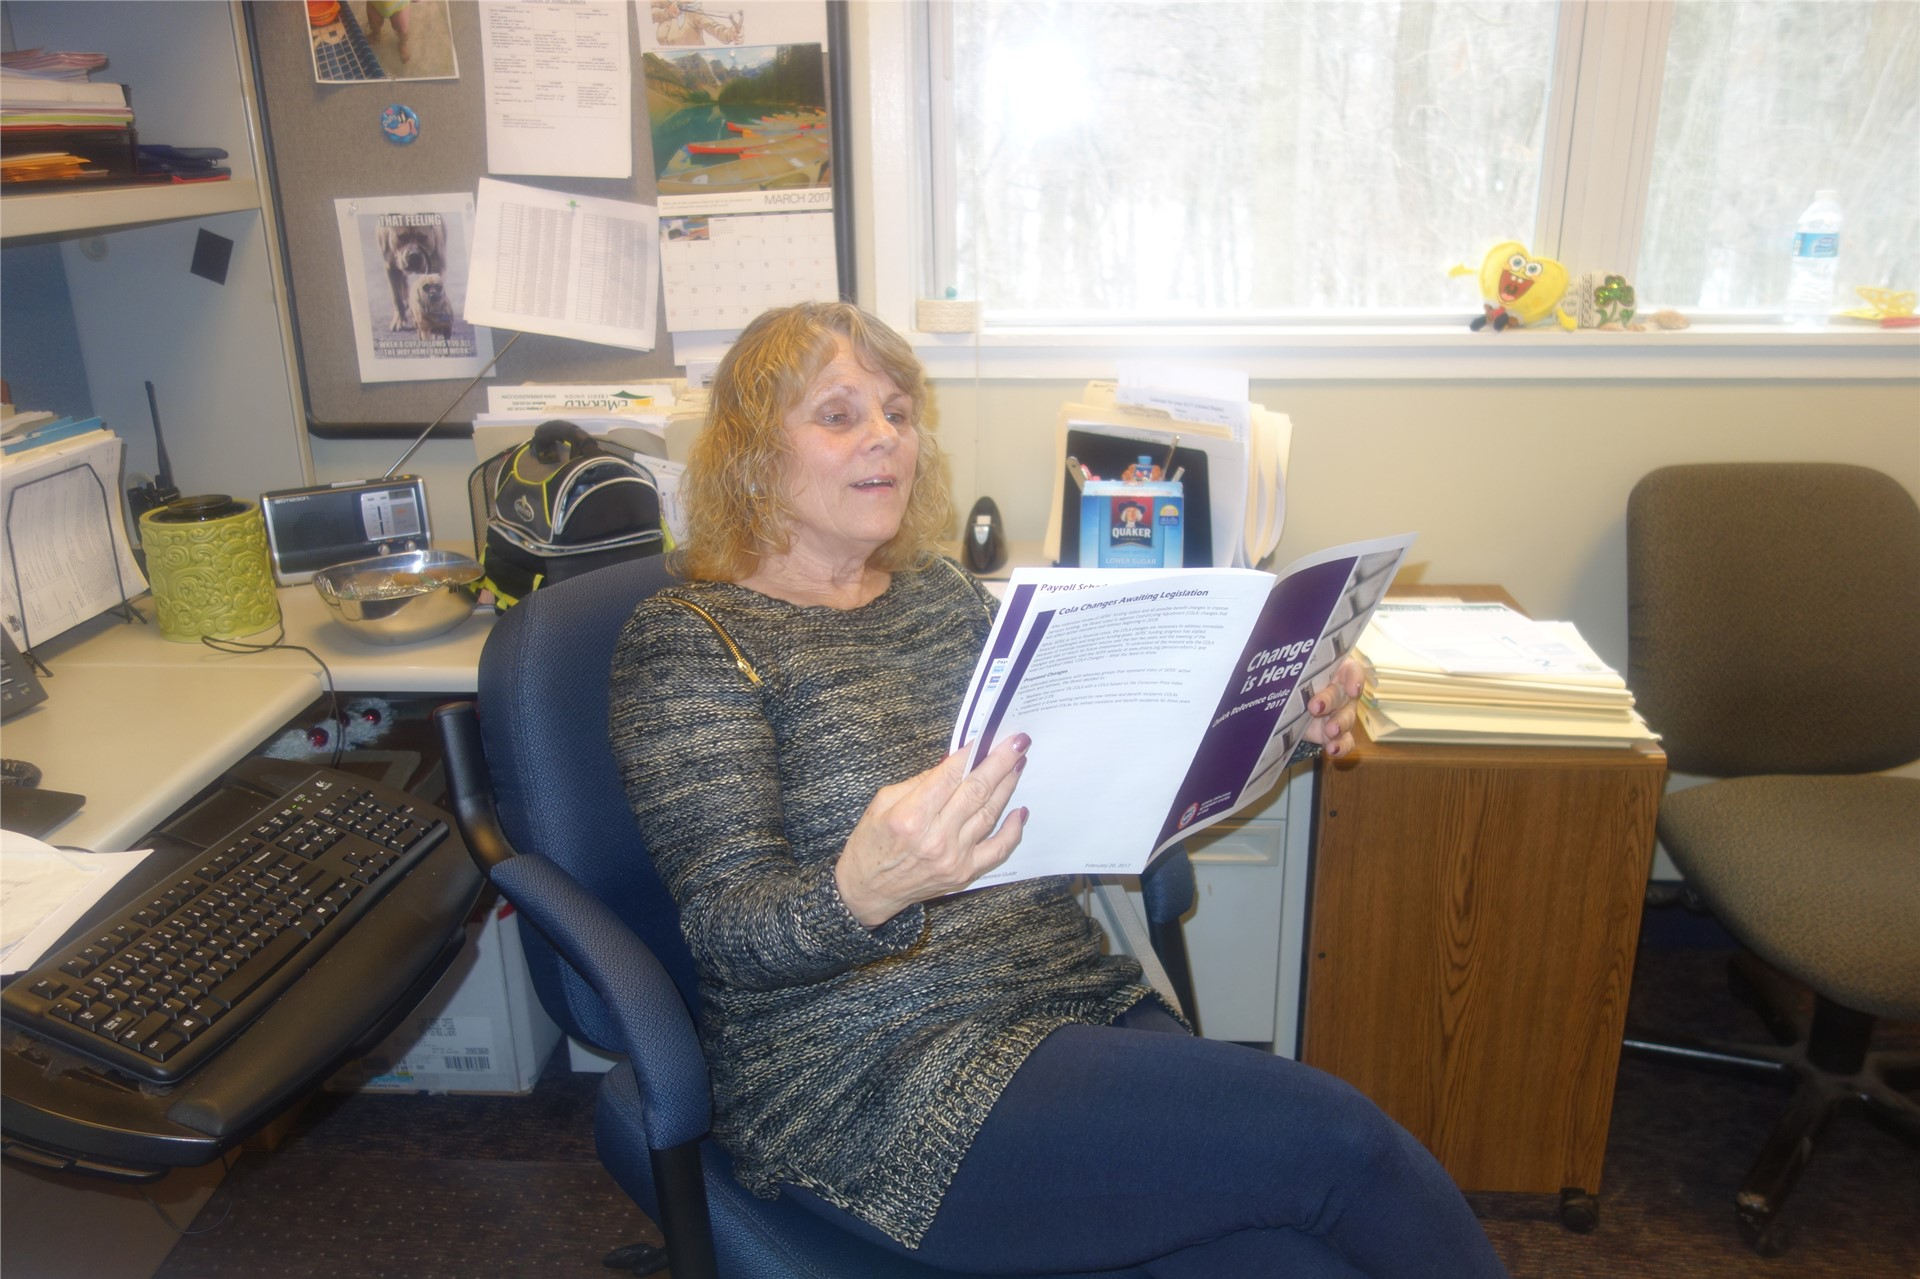 Kathy Hanus, Supervisor Fiscal Office Operations/Payroll Coordinator